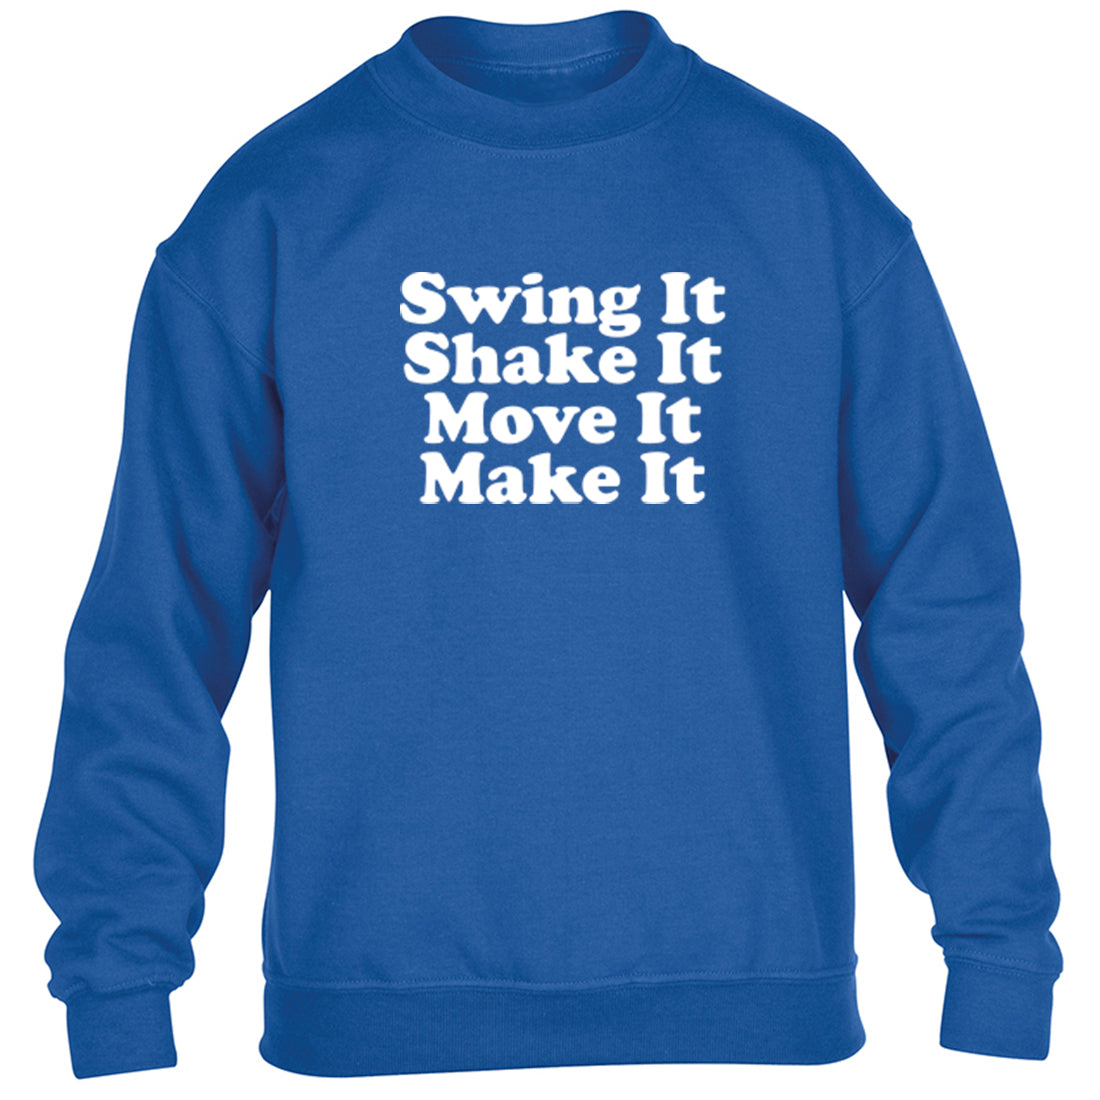 Swing It Shake It Move It Make It-Spice Girls Childrens Ages 3/4-12/14 Unisex Jumper K2430